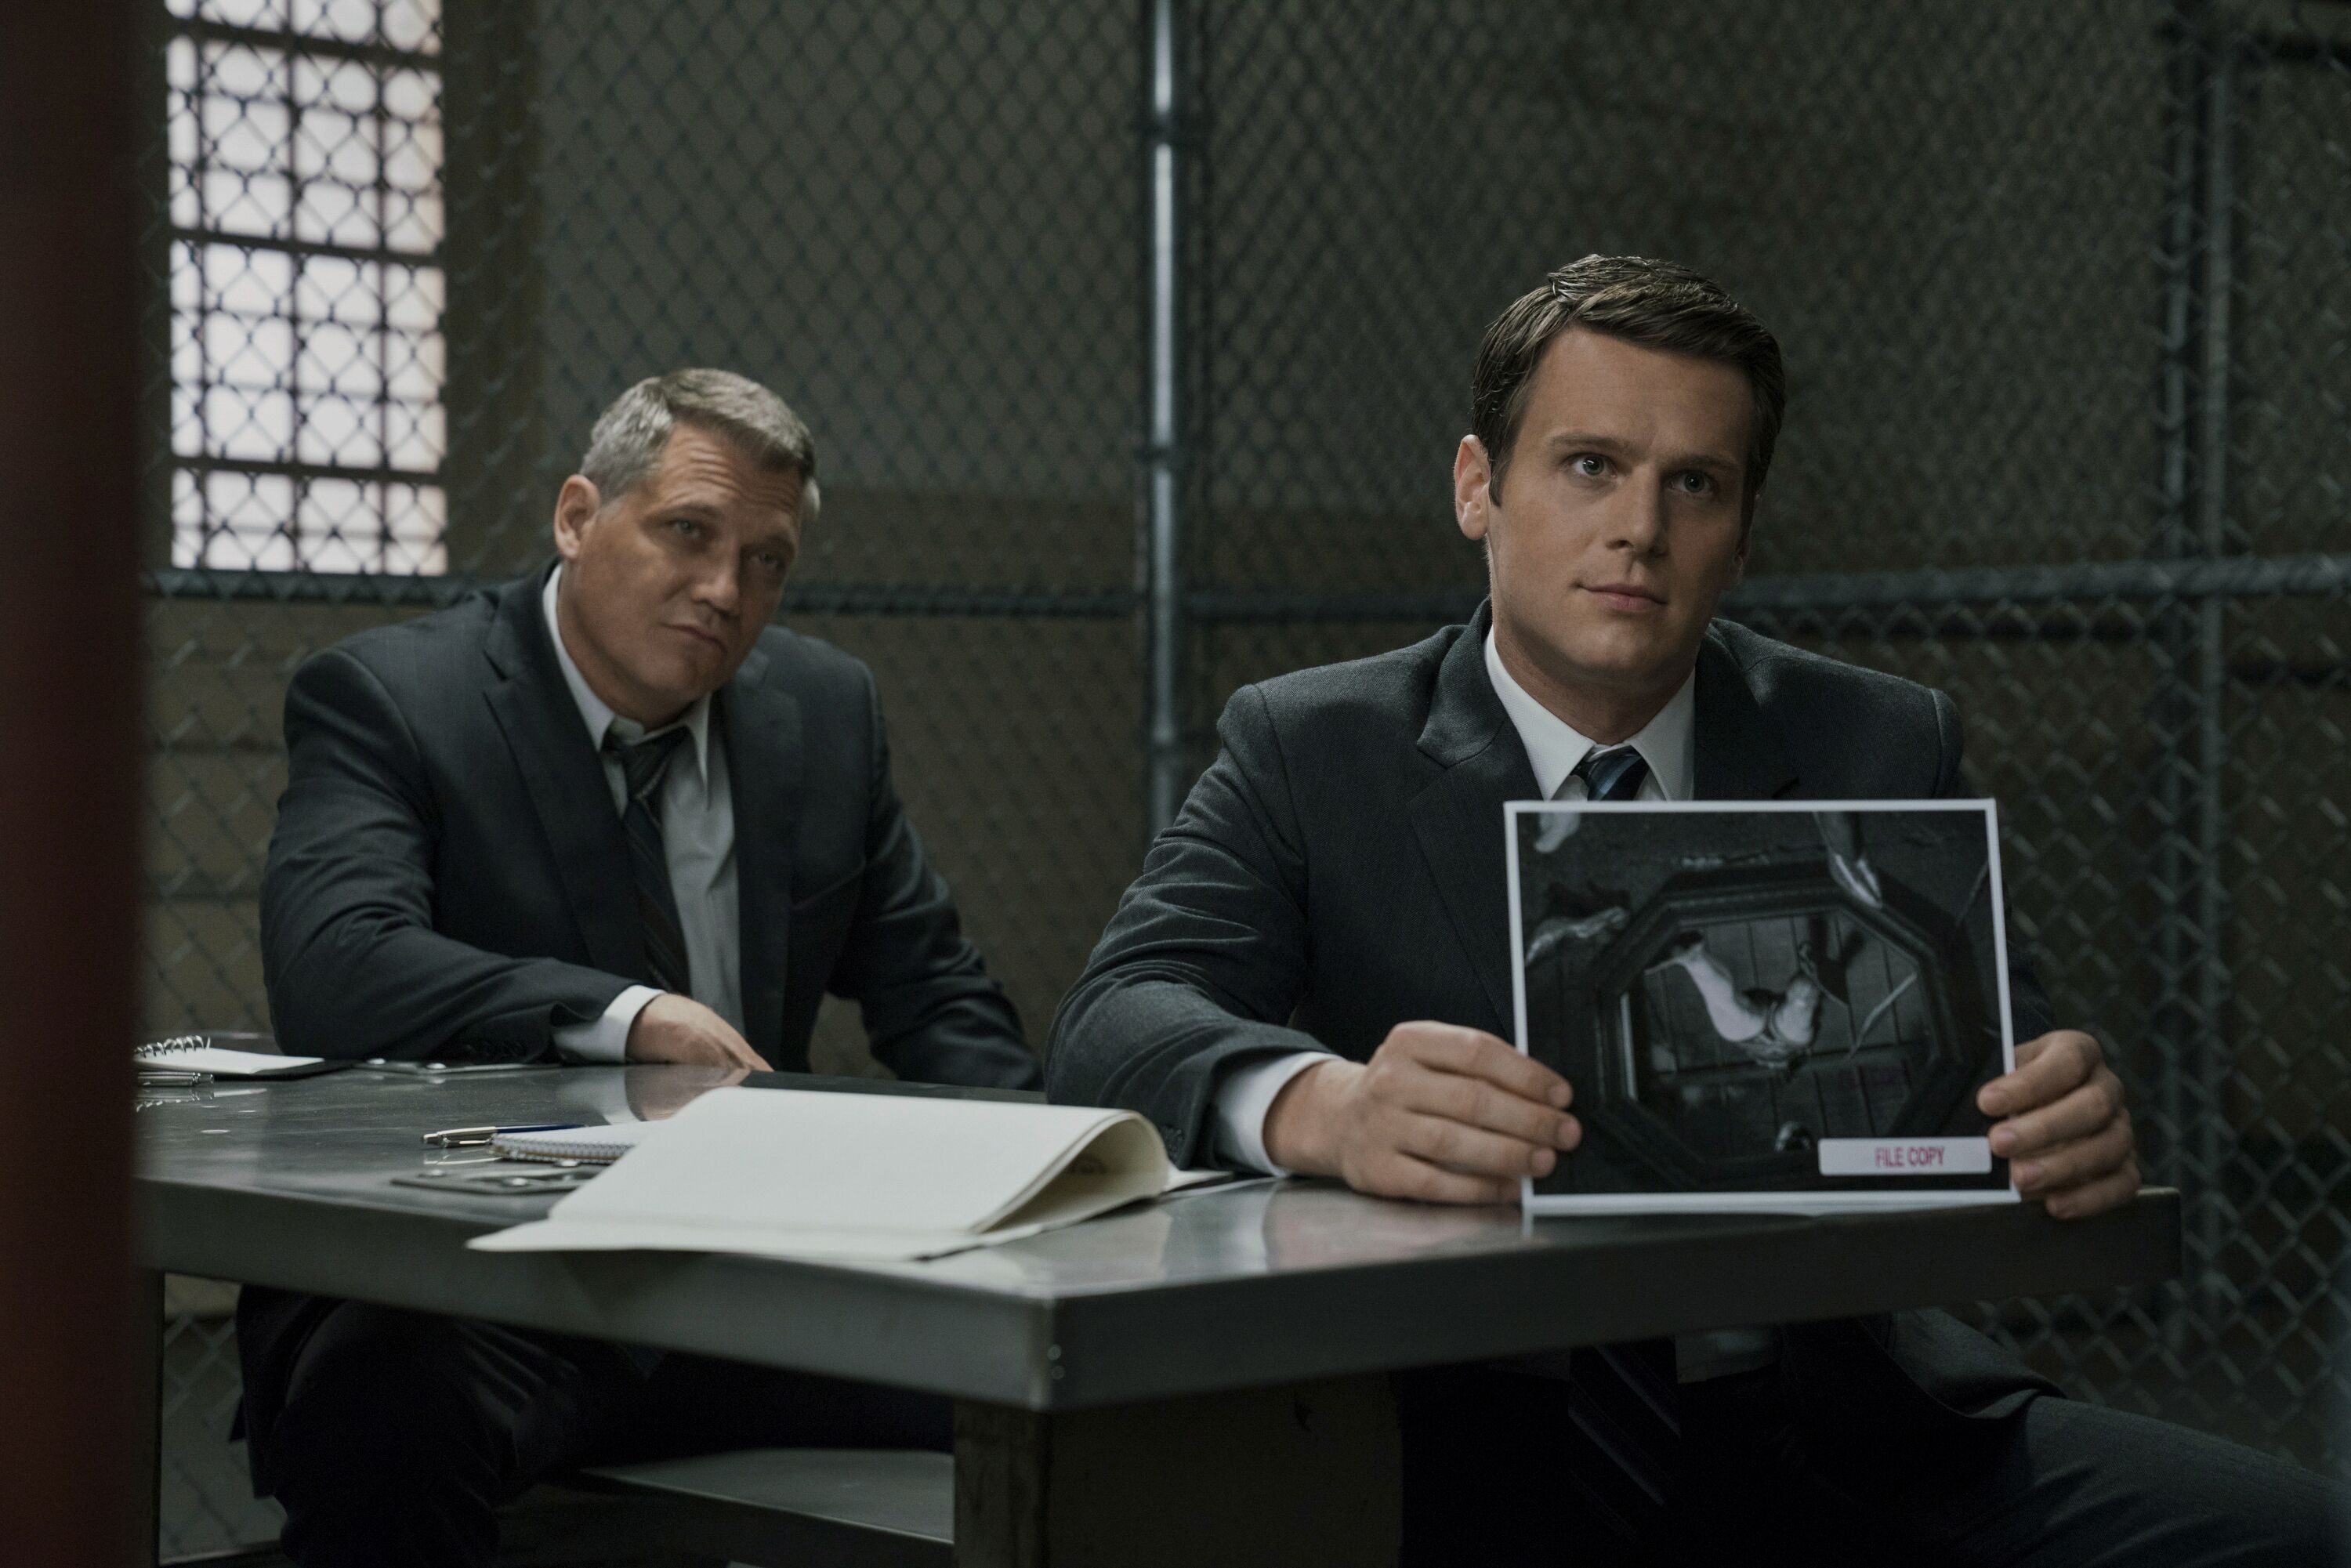 Mindhunter season 2 review: Atlanta murders makes for chilling television